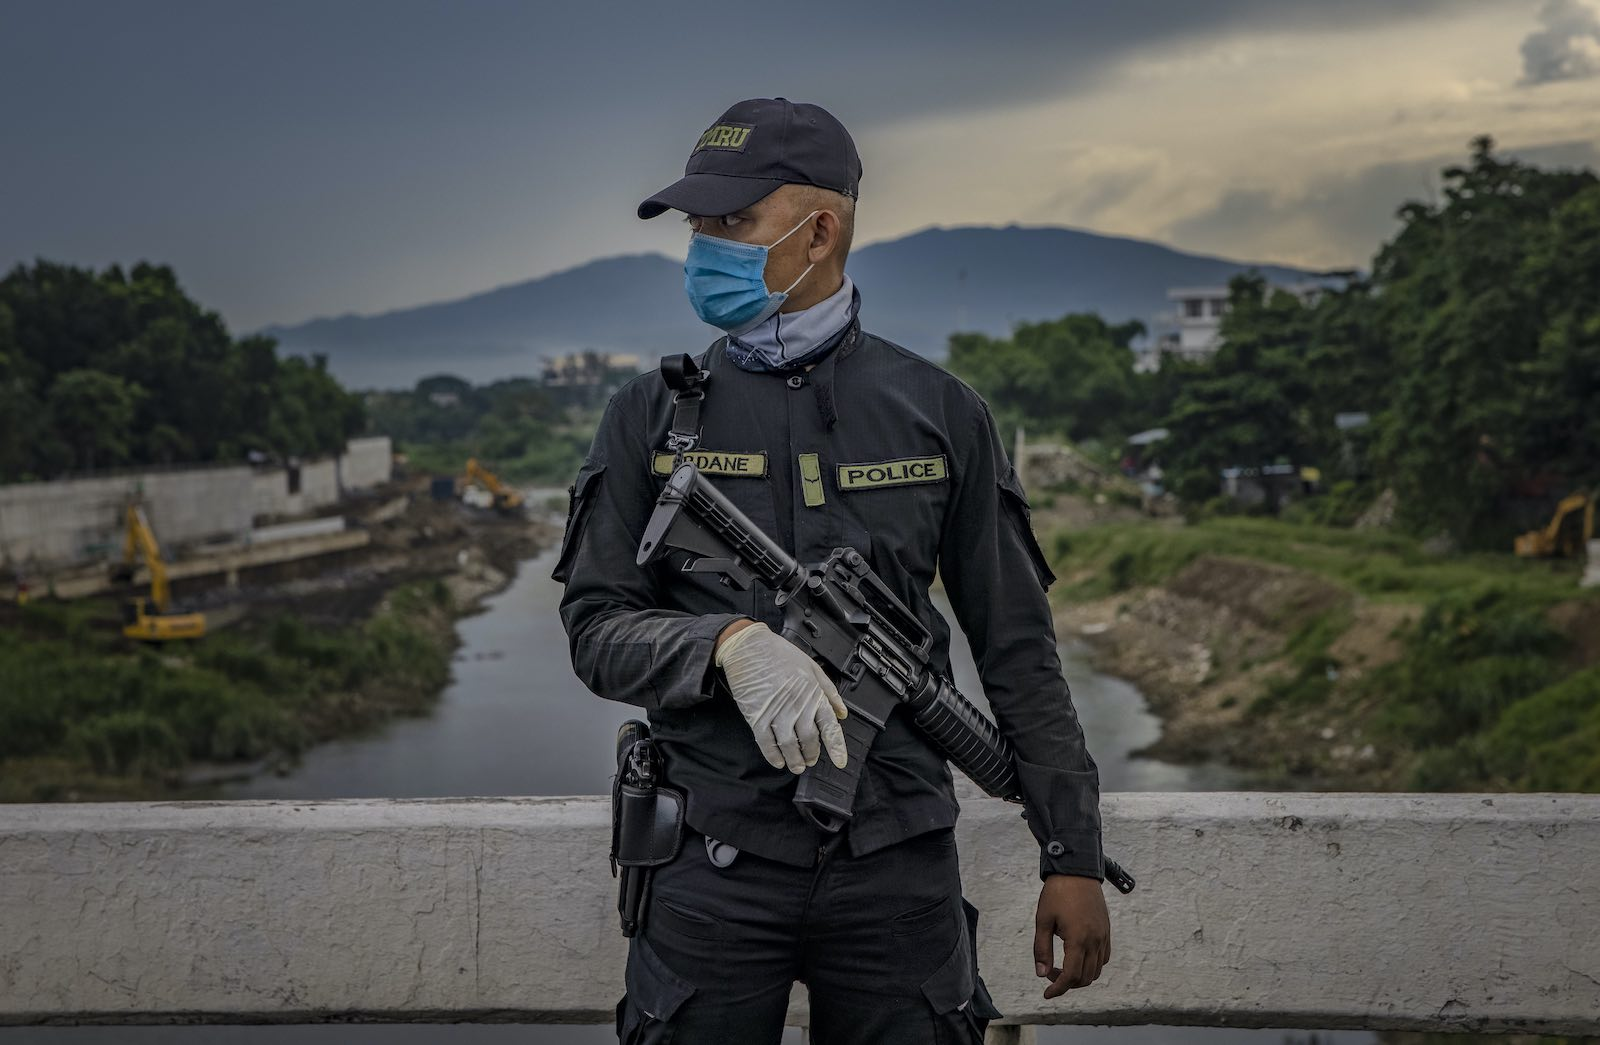 A police officer stands guard at a quarantine checkpoint in Quezon city, Philippines, 4 August 2020 (Ezra Acayan/Getty Images)